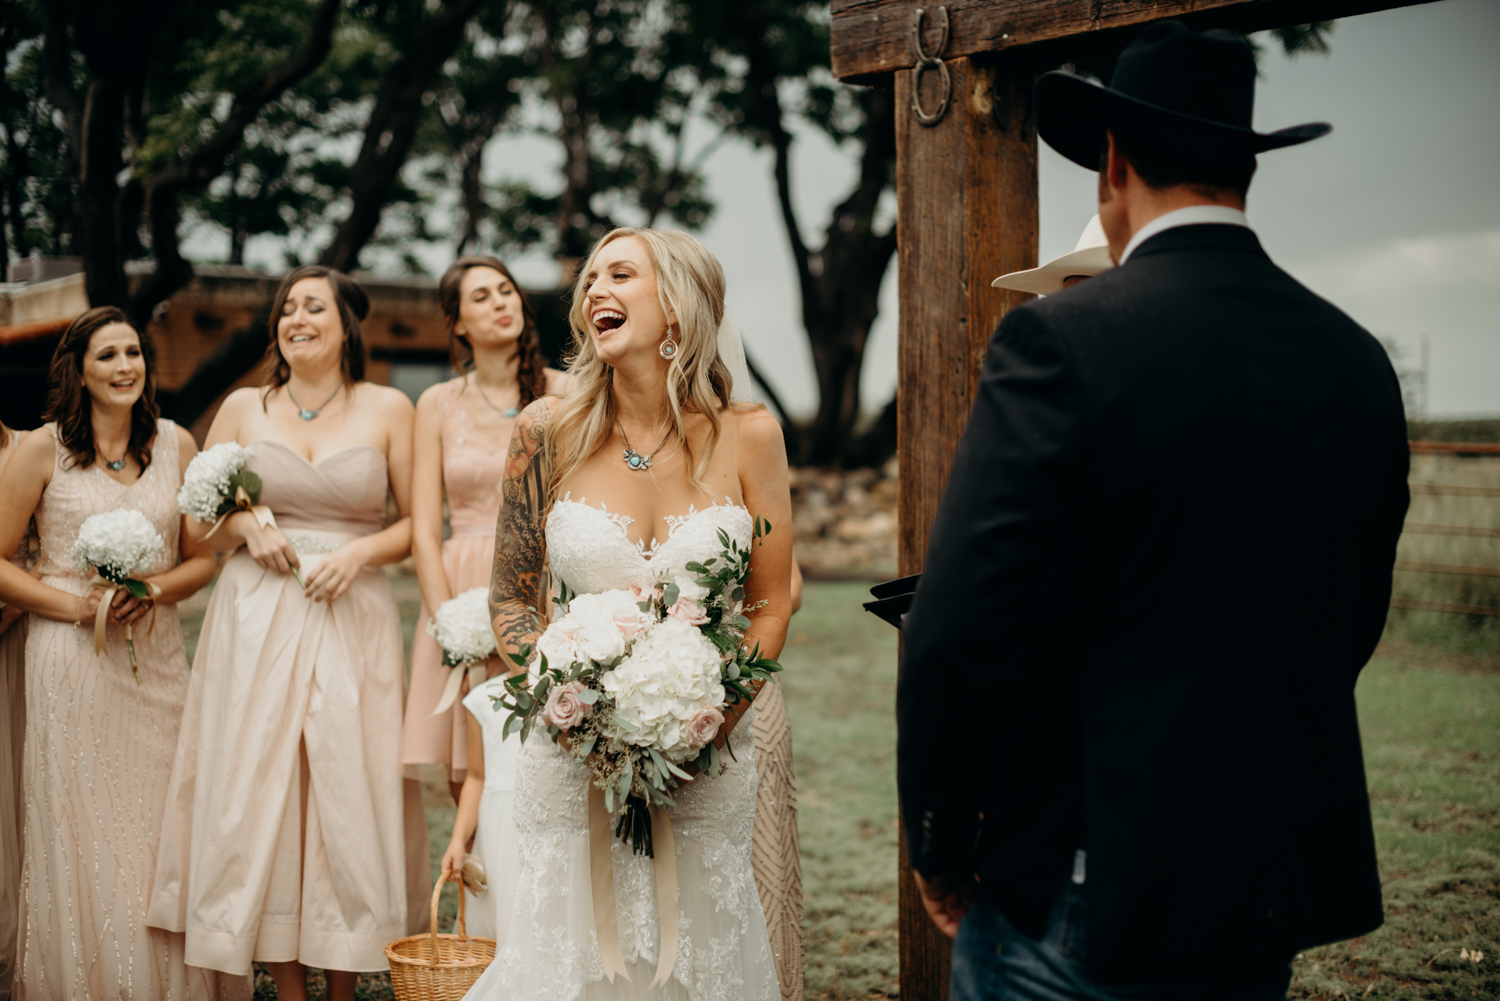 Genuine moment photographed of the bride during her outdoor ceremony at the Groom's family ranch in Arizona.